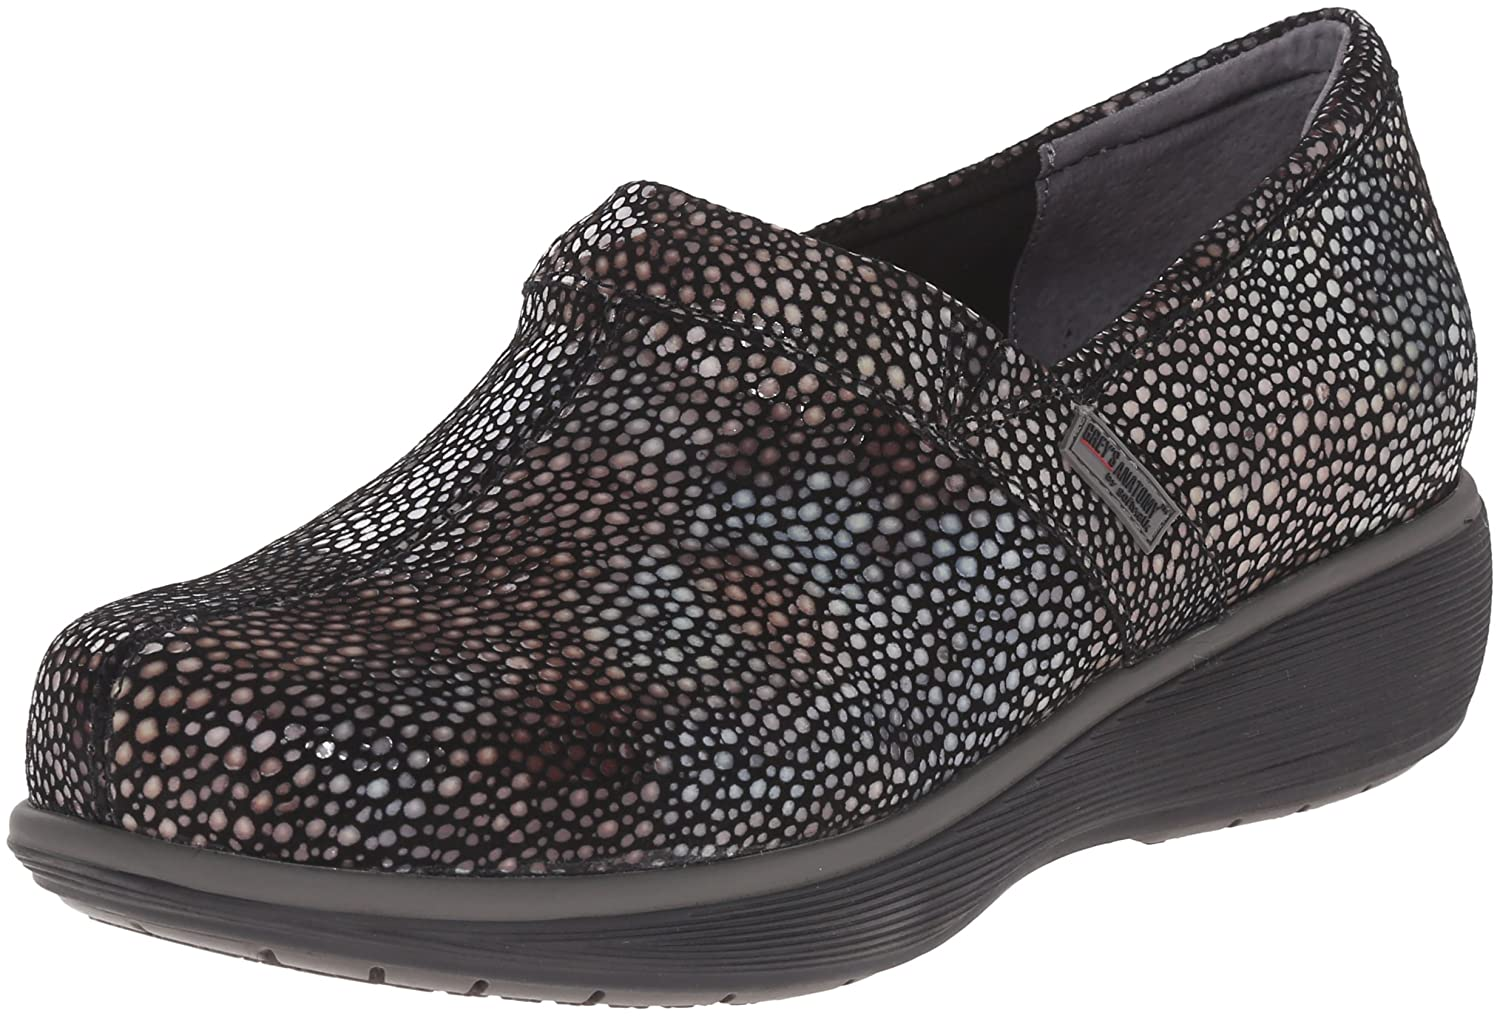 SoftWalk Women's Meredith Clog B019CZJ6US 9.5 W US|Multi Mosaic